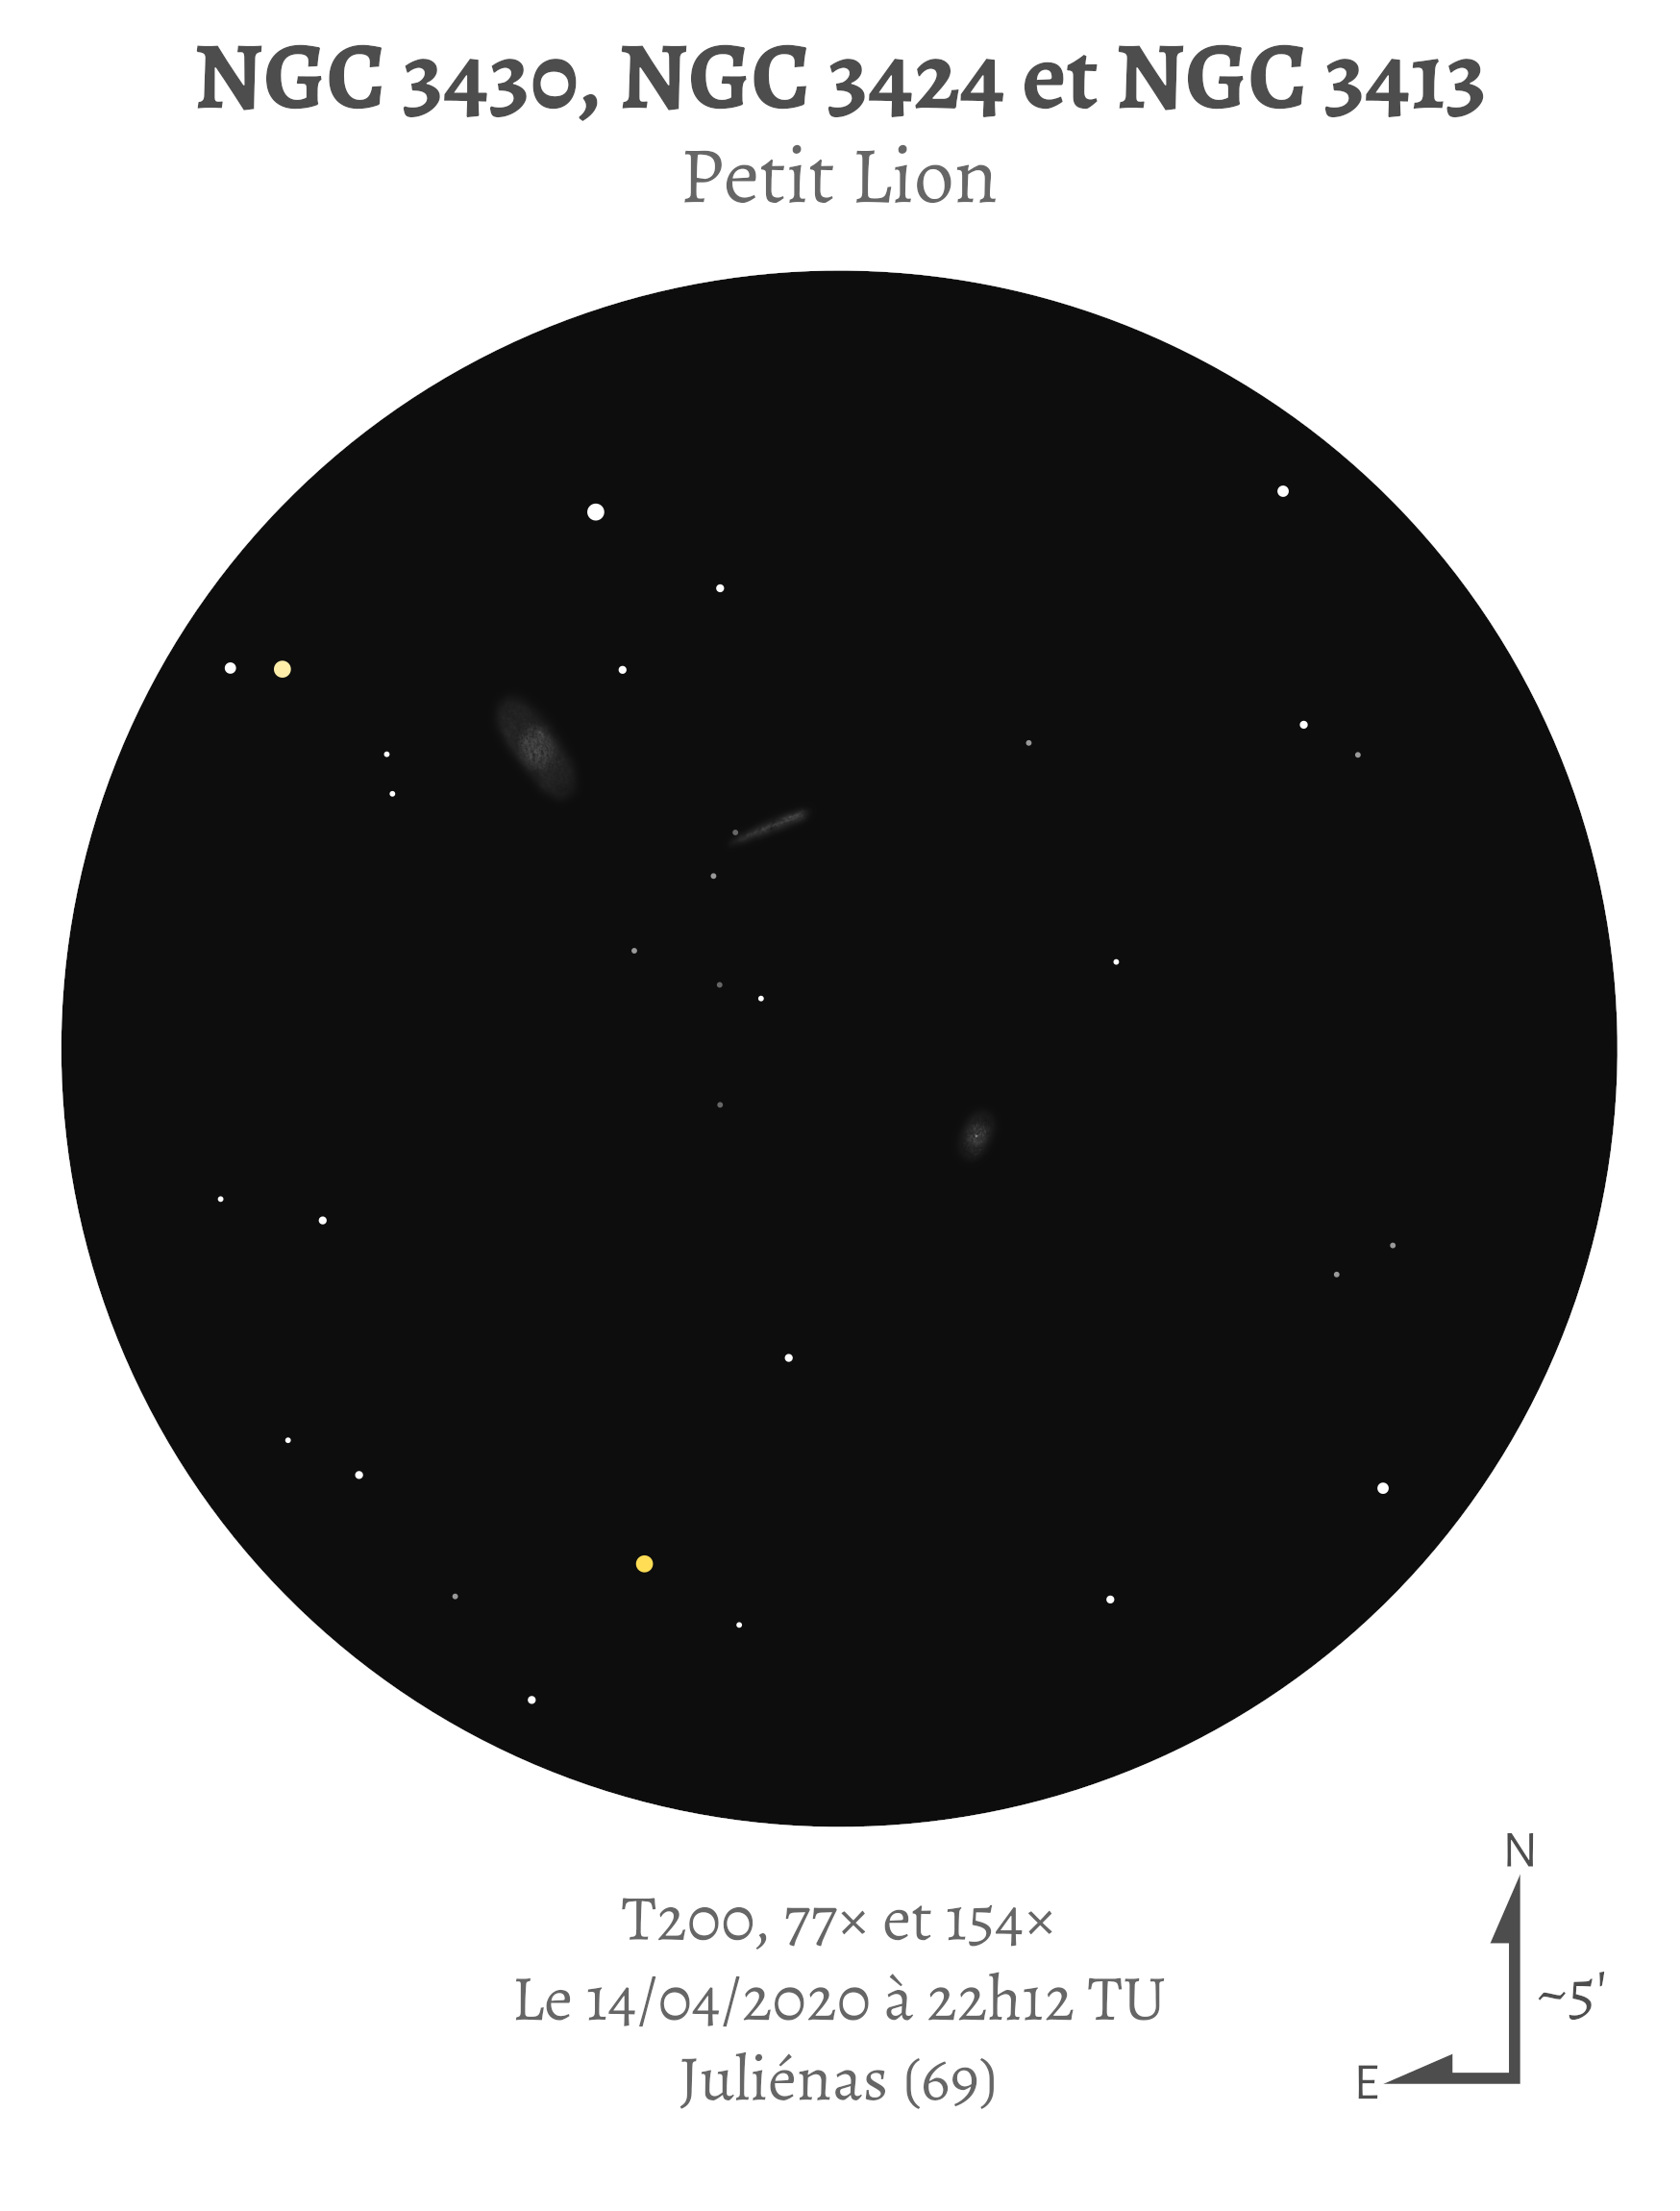 large.5e9960c8a4aff_NGC343034243413-T200.png.380f9e924bd5a401692cef4be1c3dec9.png